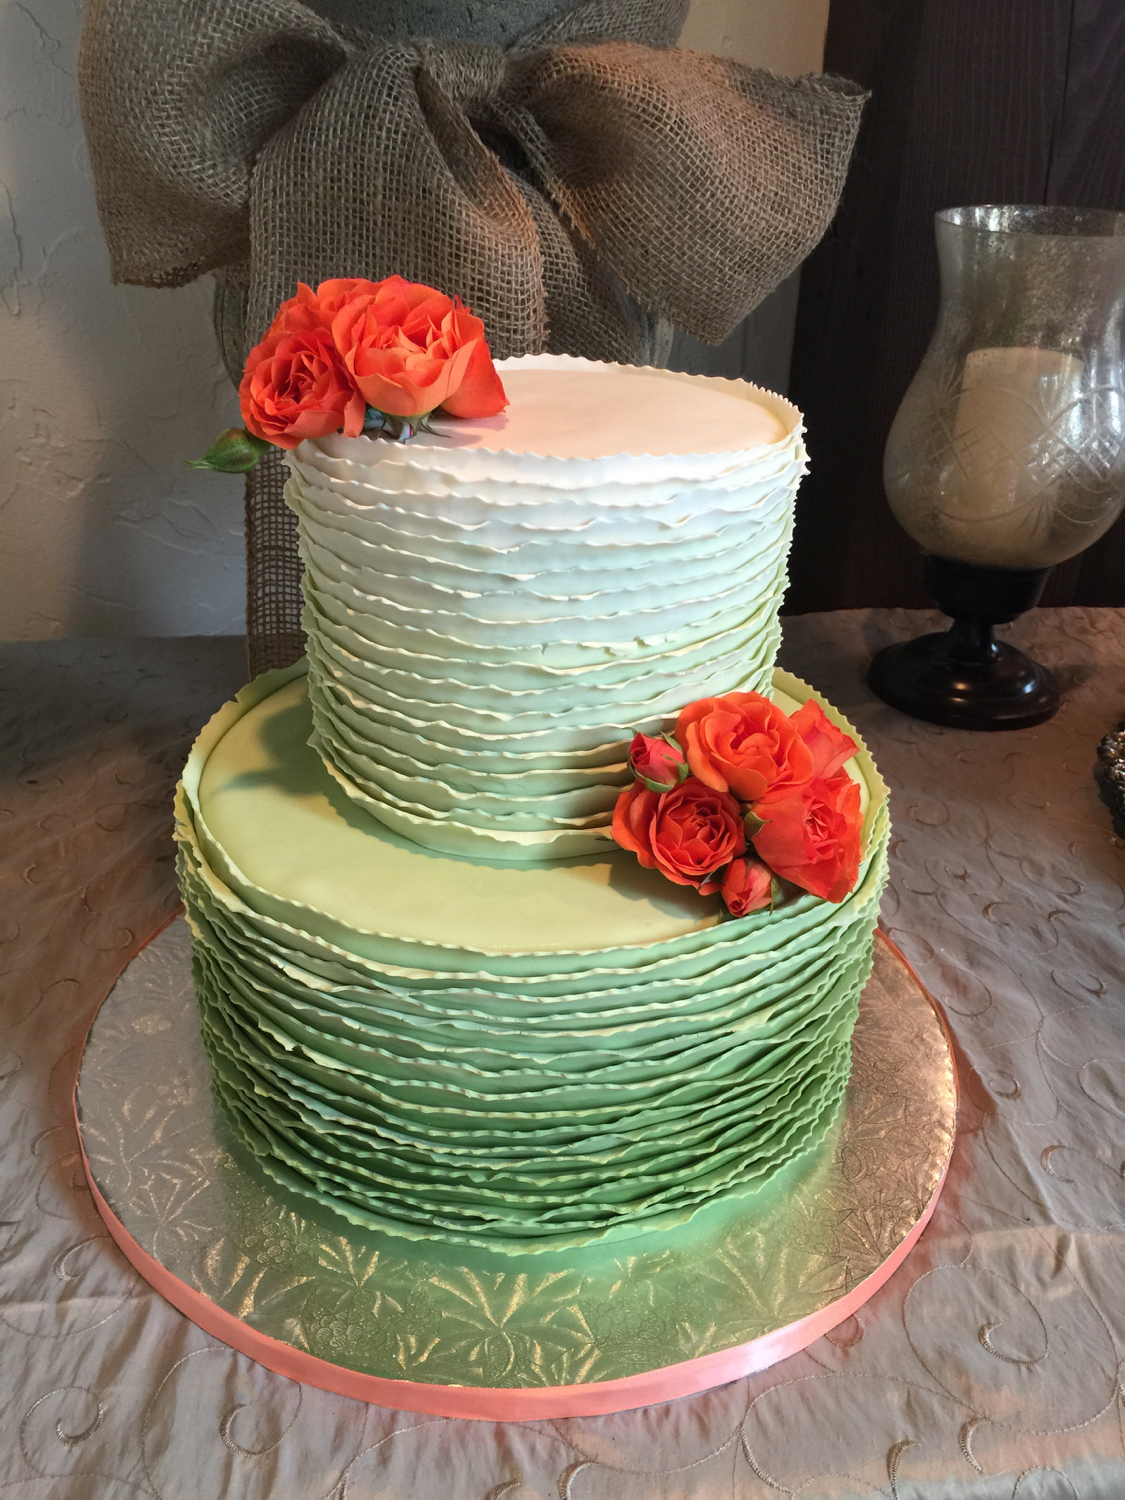 Baby shower cake: champagne cake with raspberry filling, courtesy of MISS PATTY CAKES of Kalispell, Montana